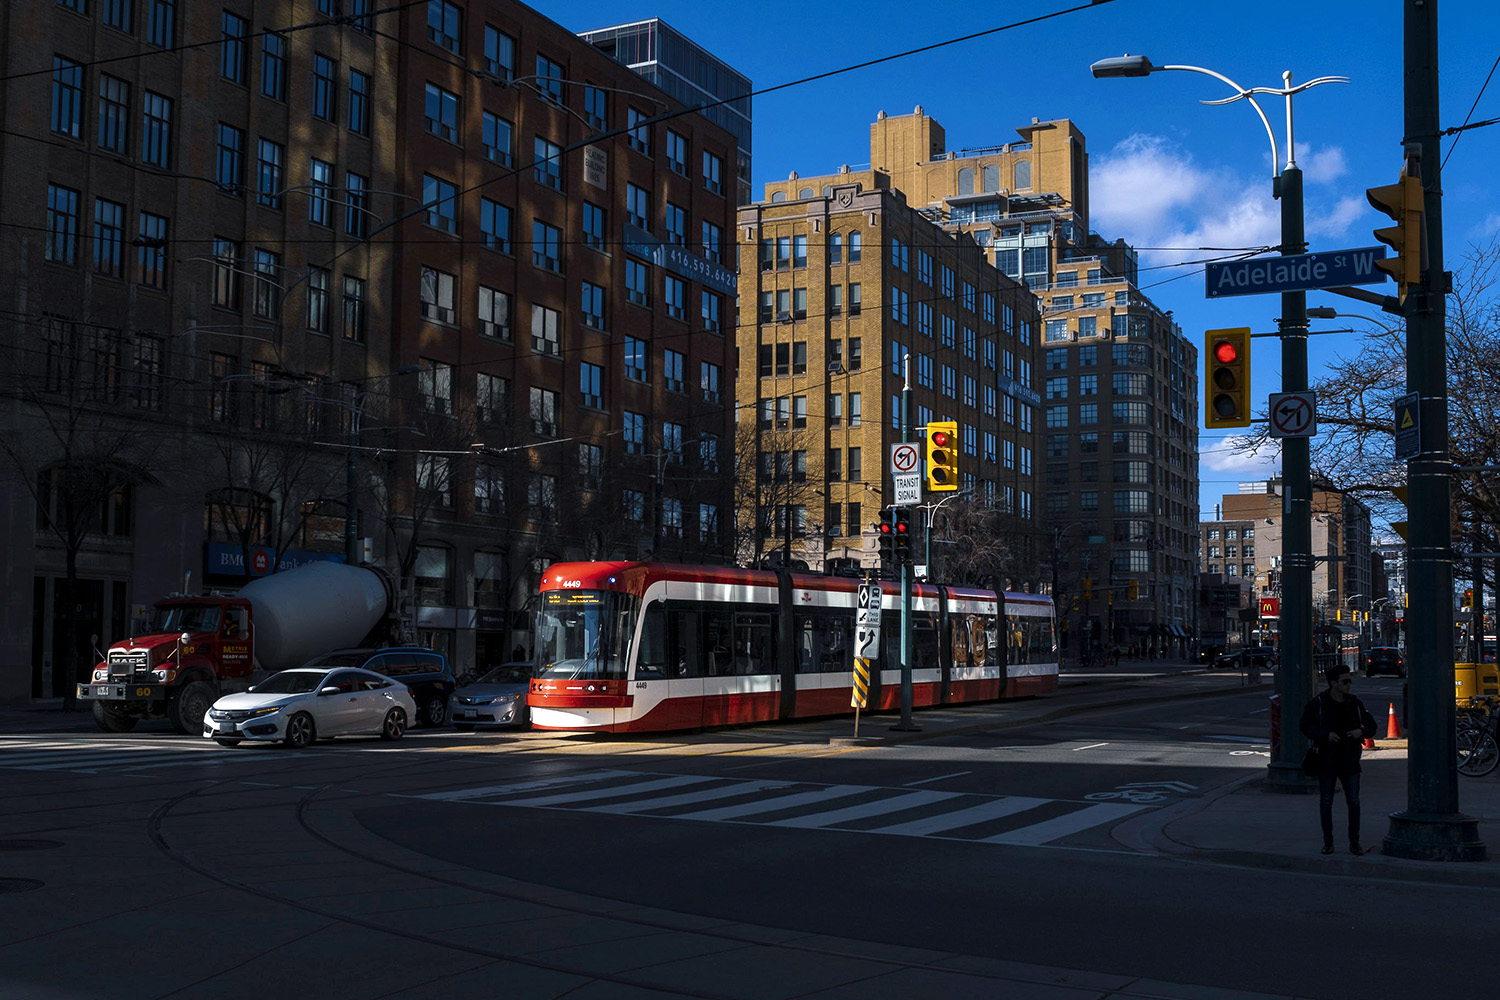 A streetcar is seen on Spading Ave., Toronto.